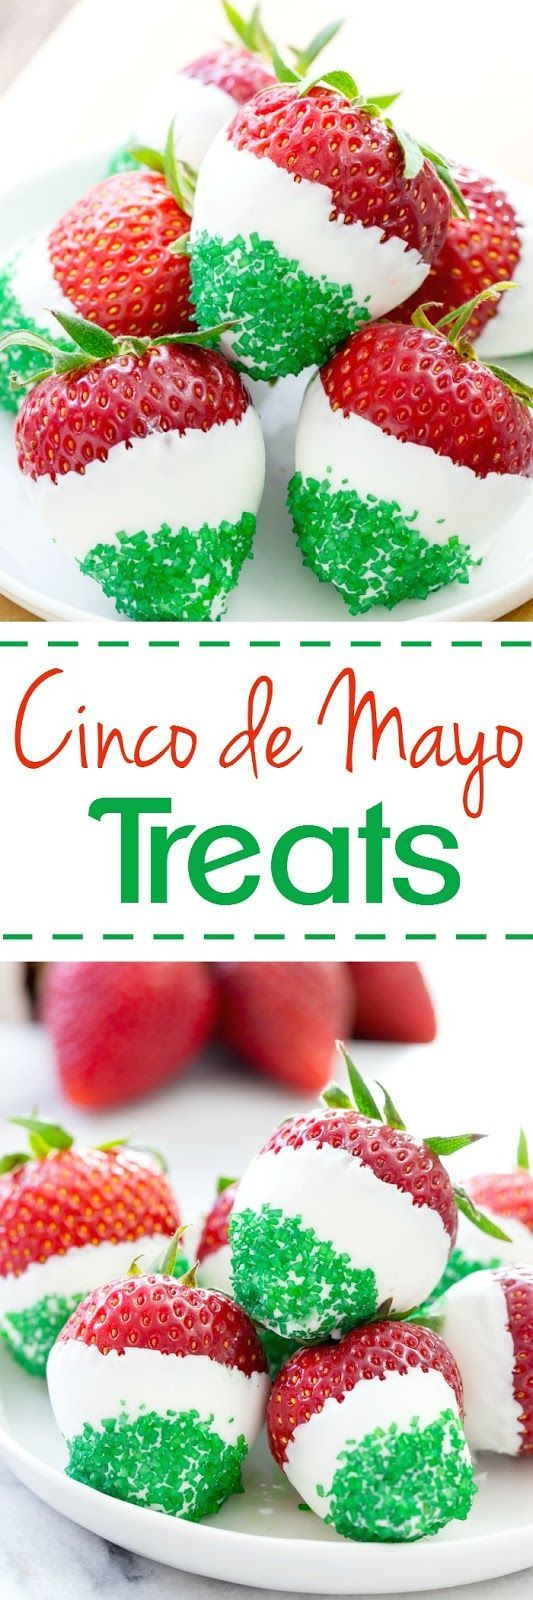 These juicy strawberries are all decked out for Cinco de Mayo.  They are dipped in white chocolate and jazzed up with green sprinkles!